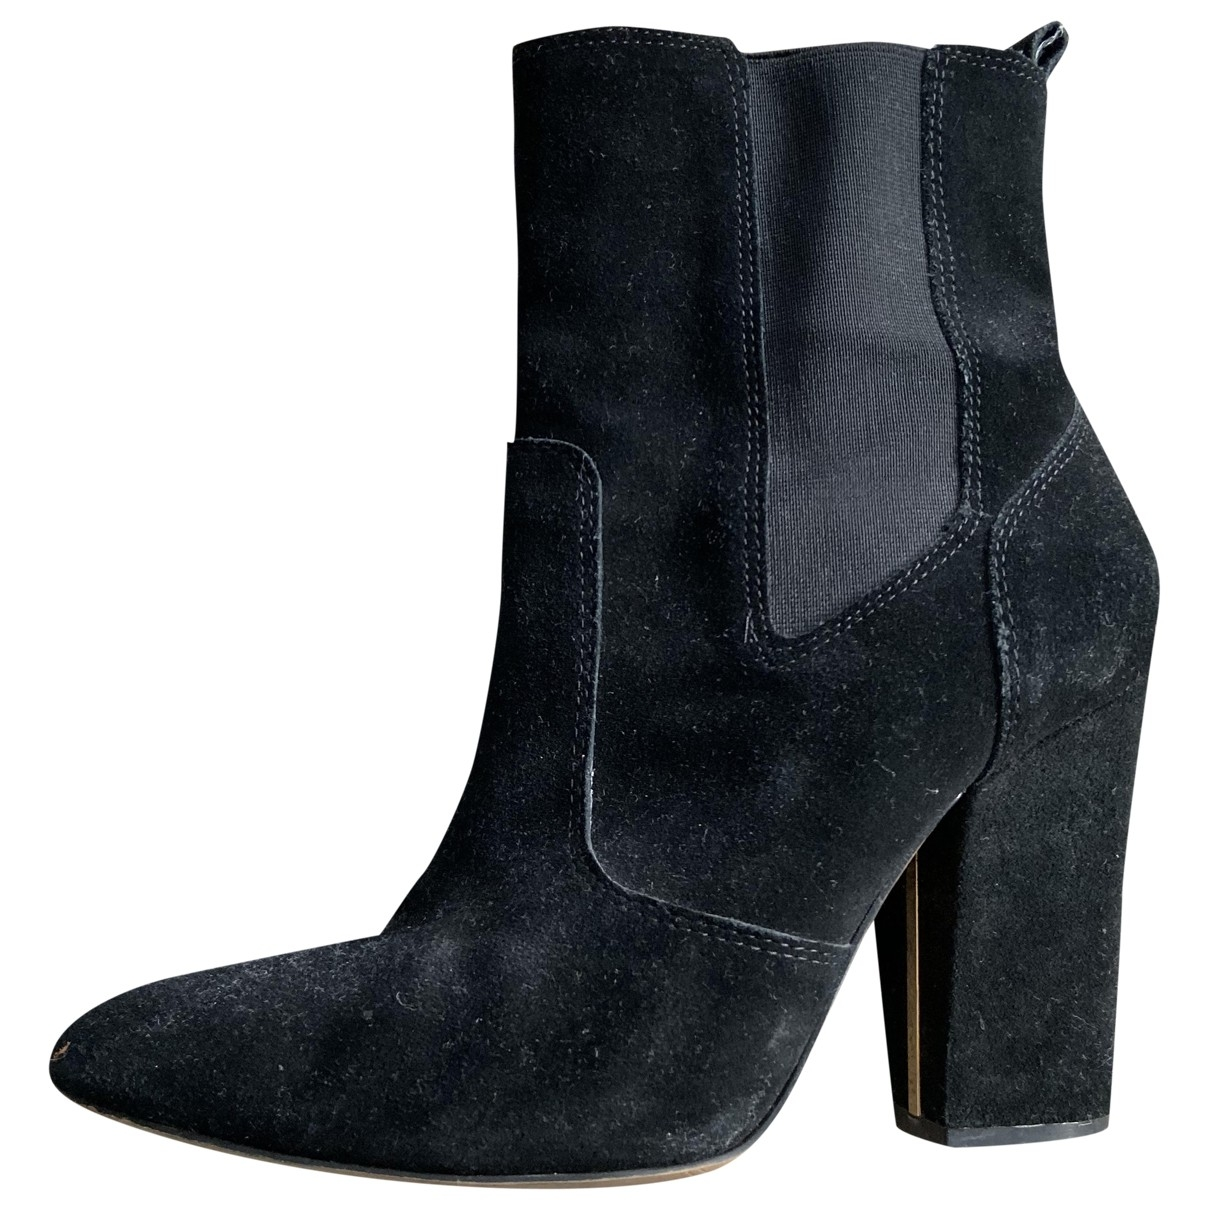 Massimo Dutti \N Black Suede Ankle boots for Women 39 EU